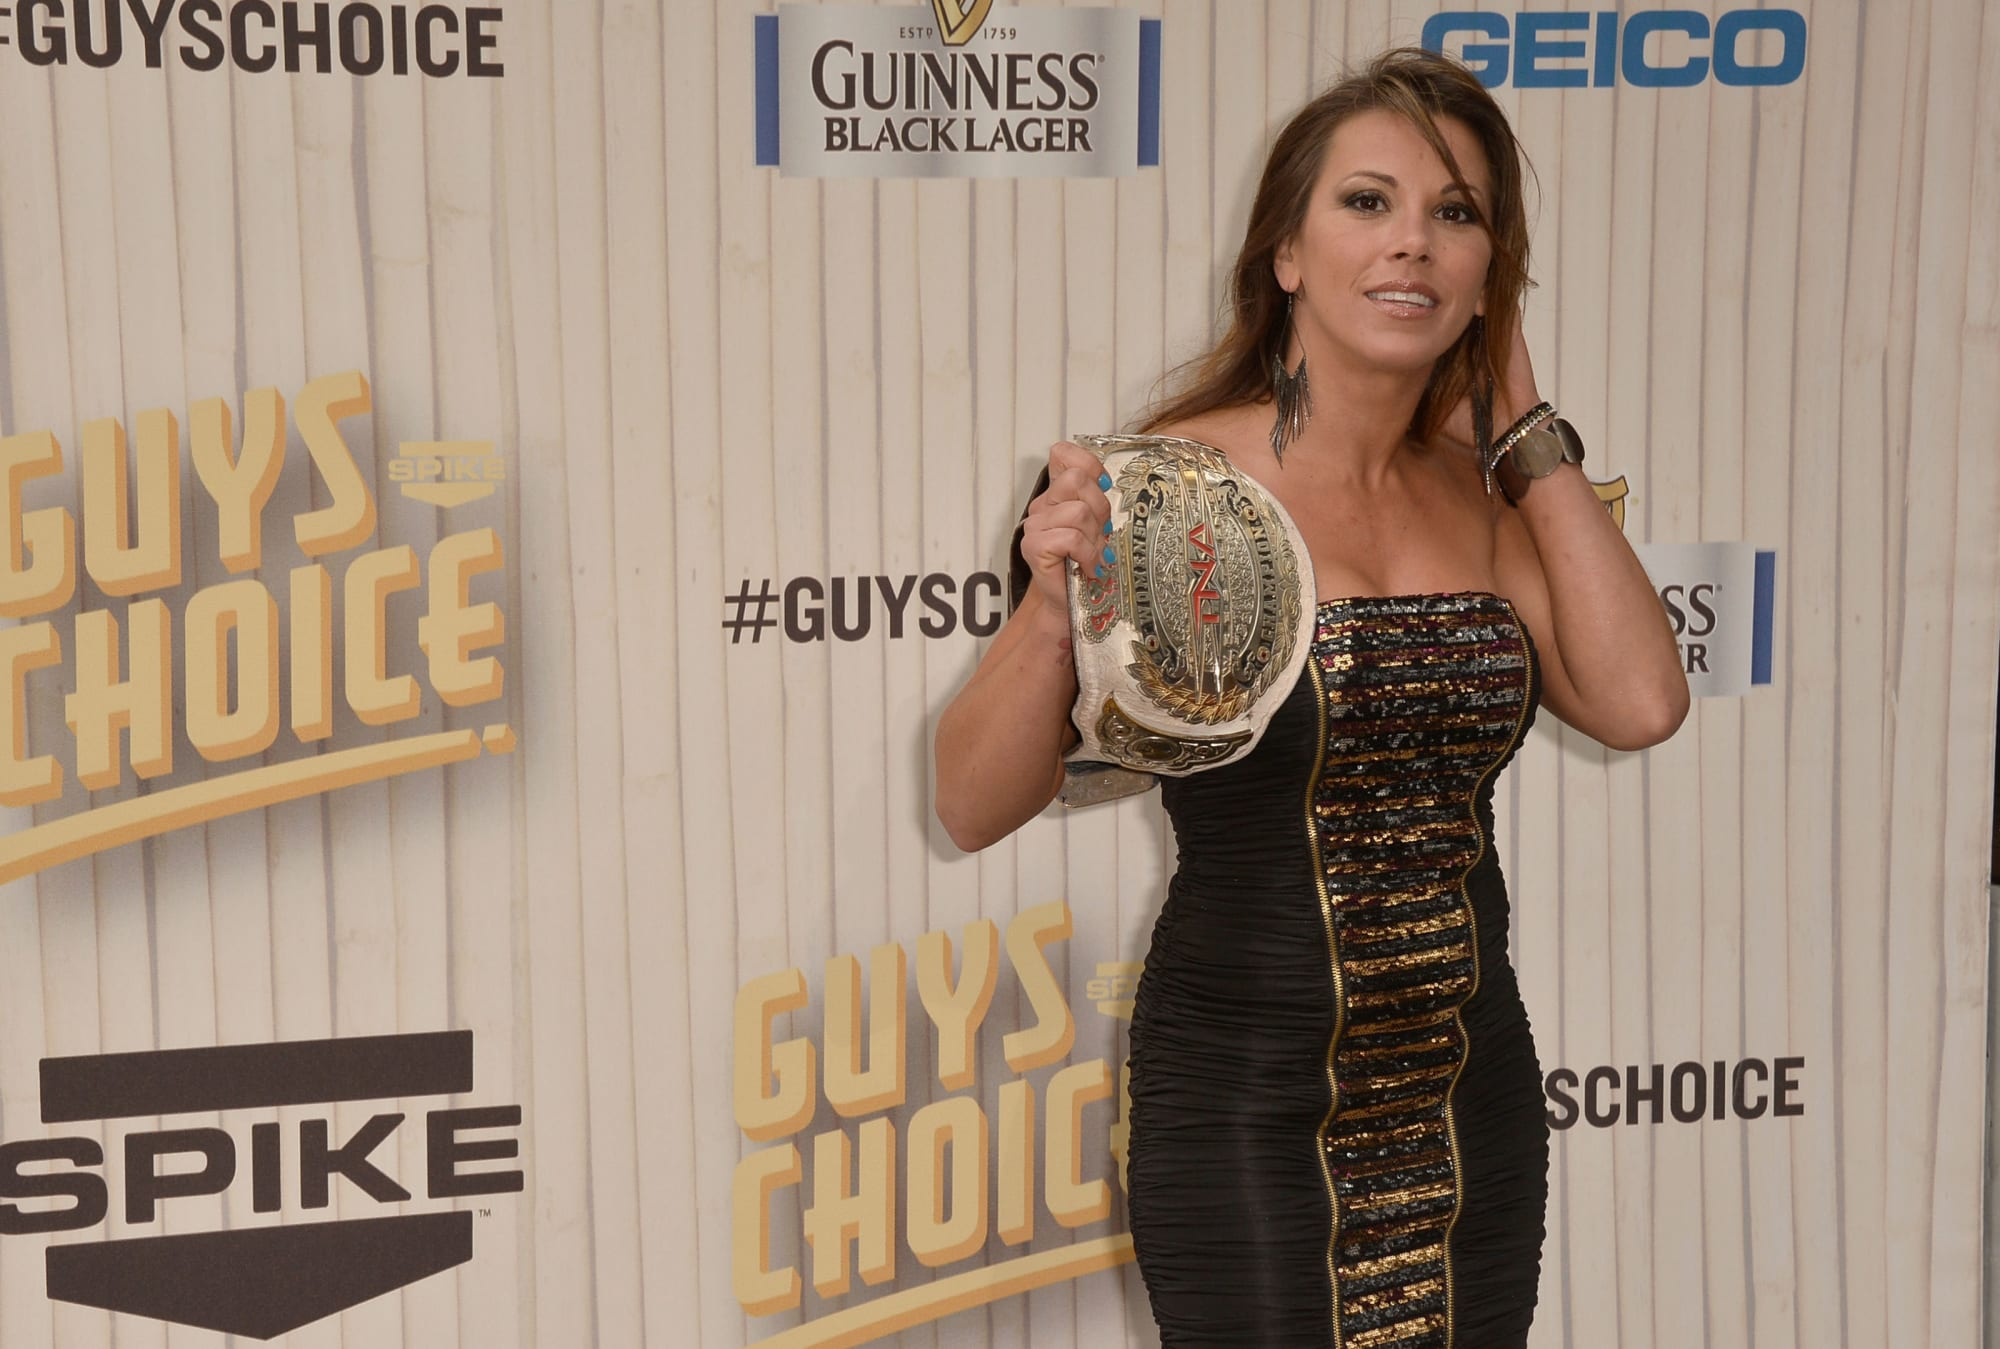 WWE Raw: Will Mickie James get momentum for another title run?